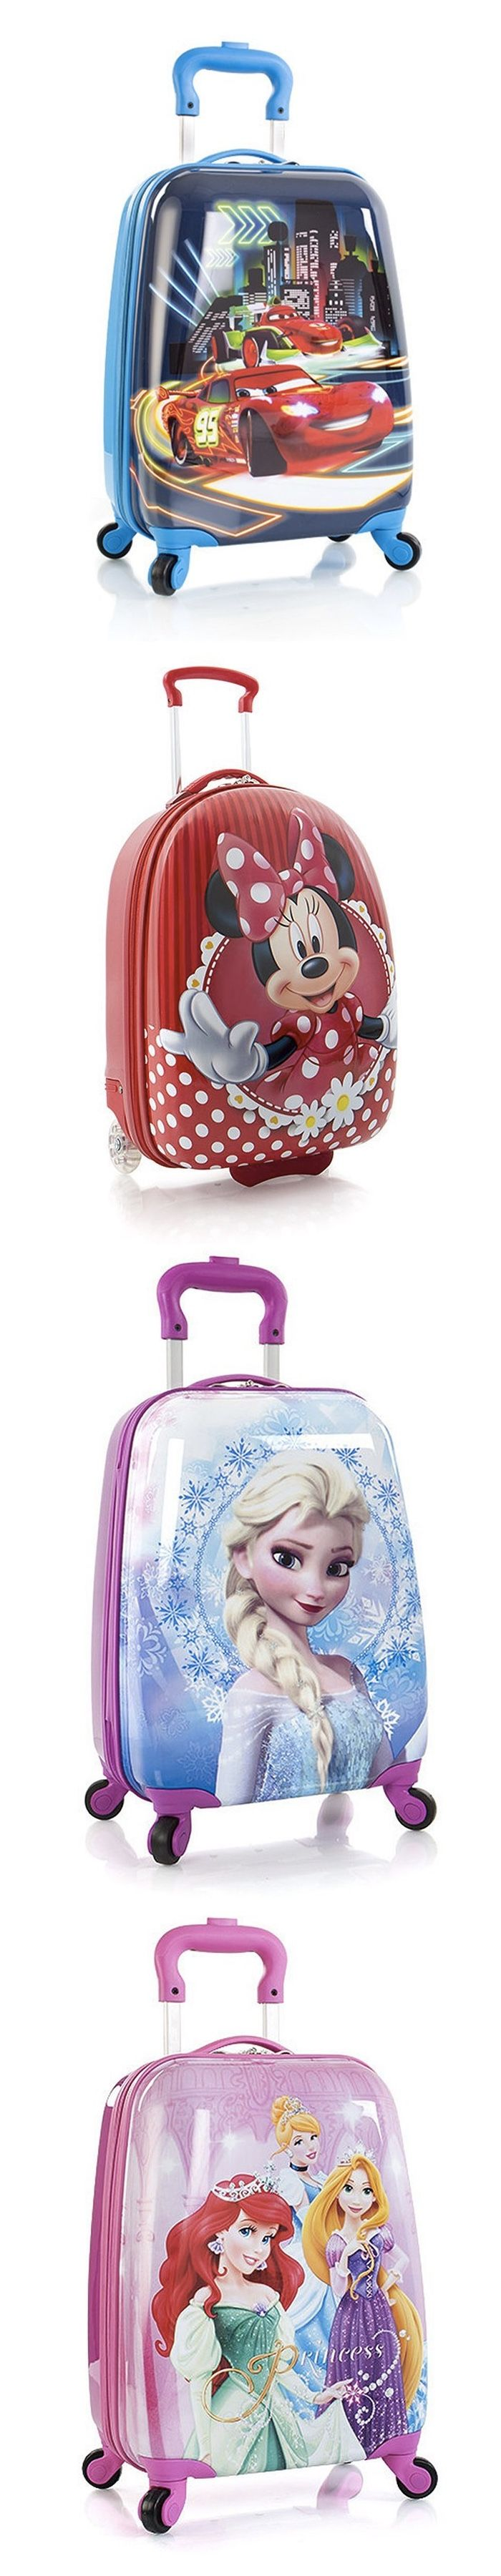 Disney luggage for kids